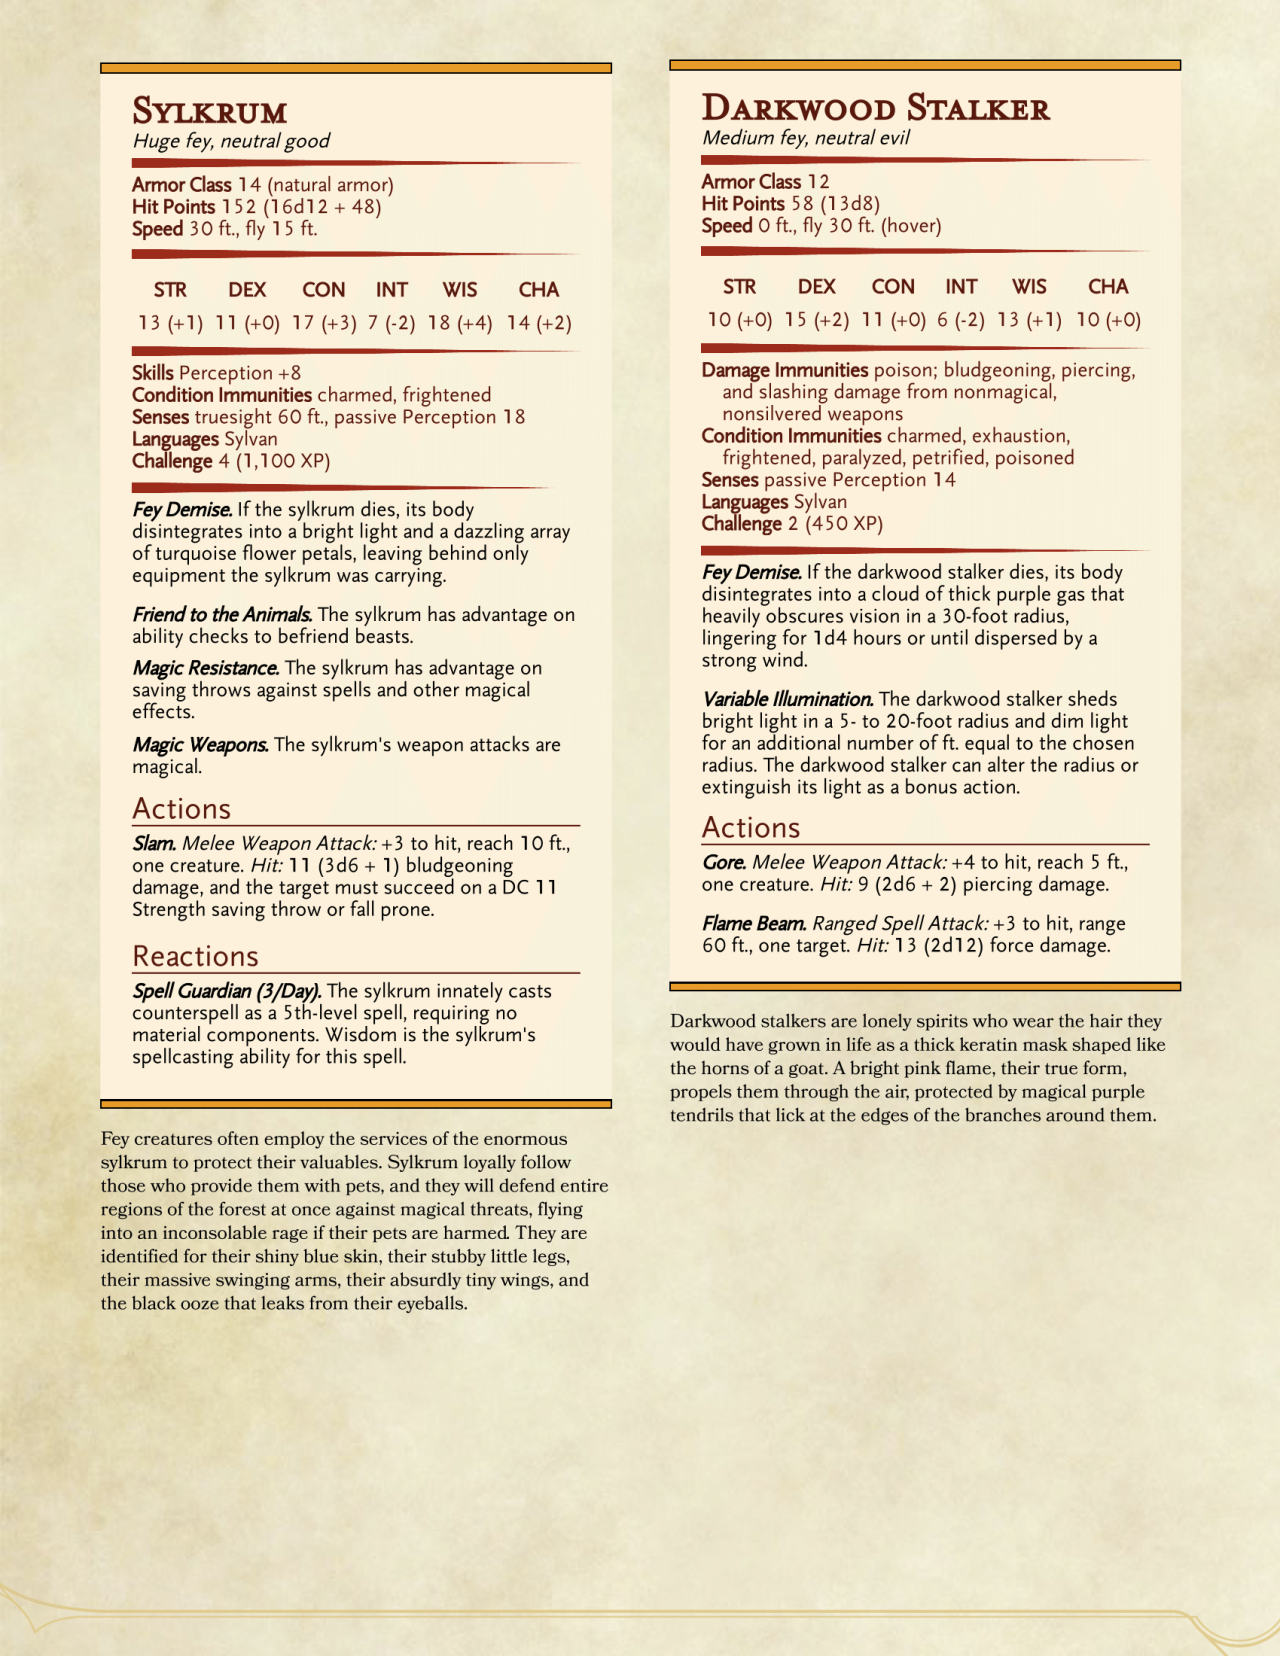 Pin by Nick Raxer on dnd monsters | Dnd 5e homebrew, Dnd